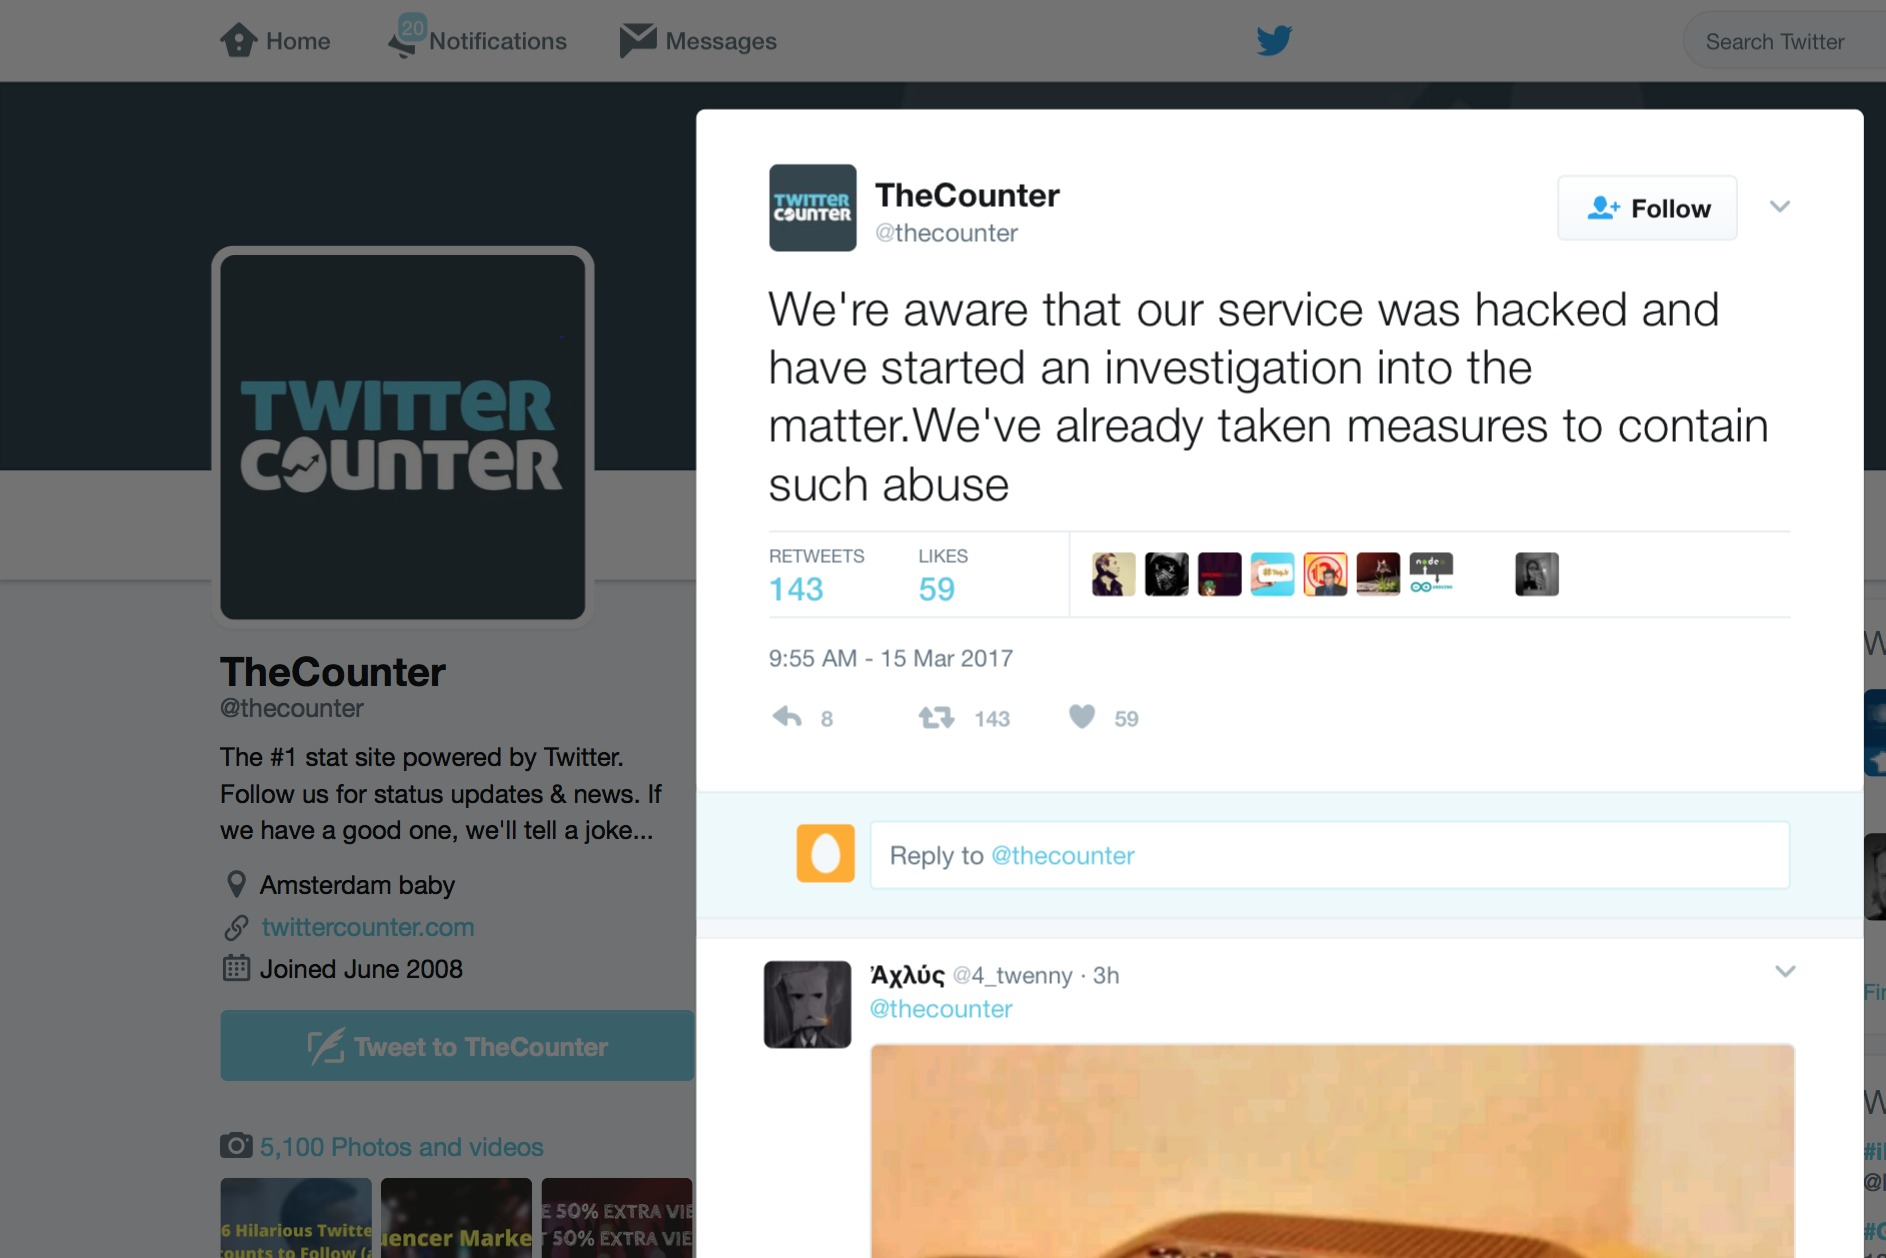 Twitter accounts hacked, Twitter Counter steps forward as culprit